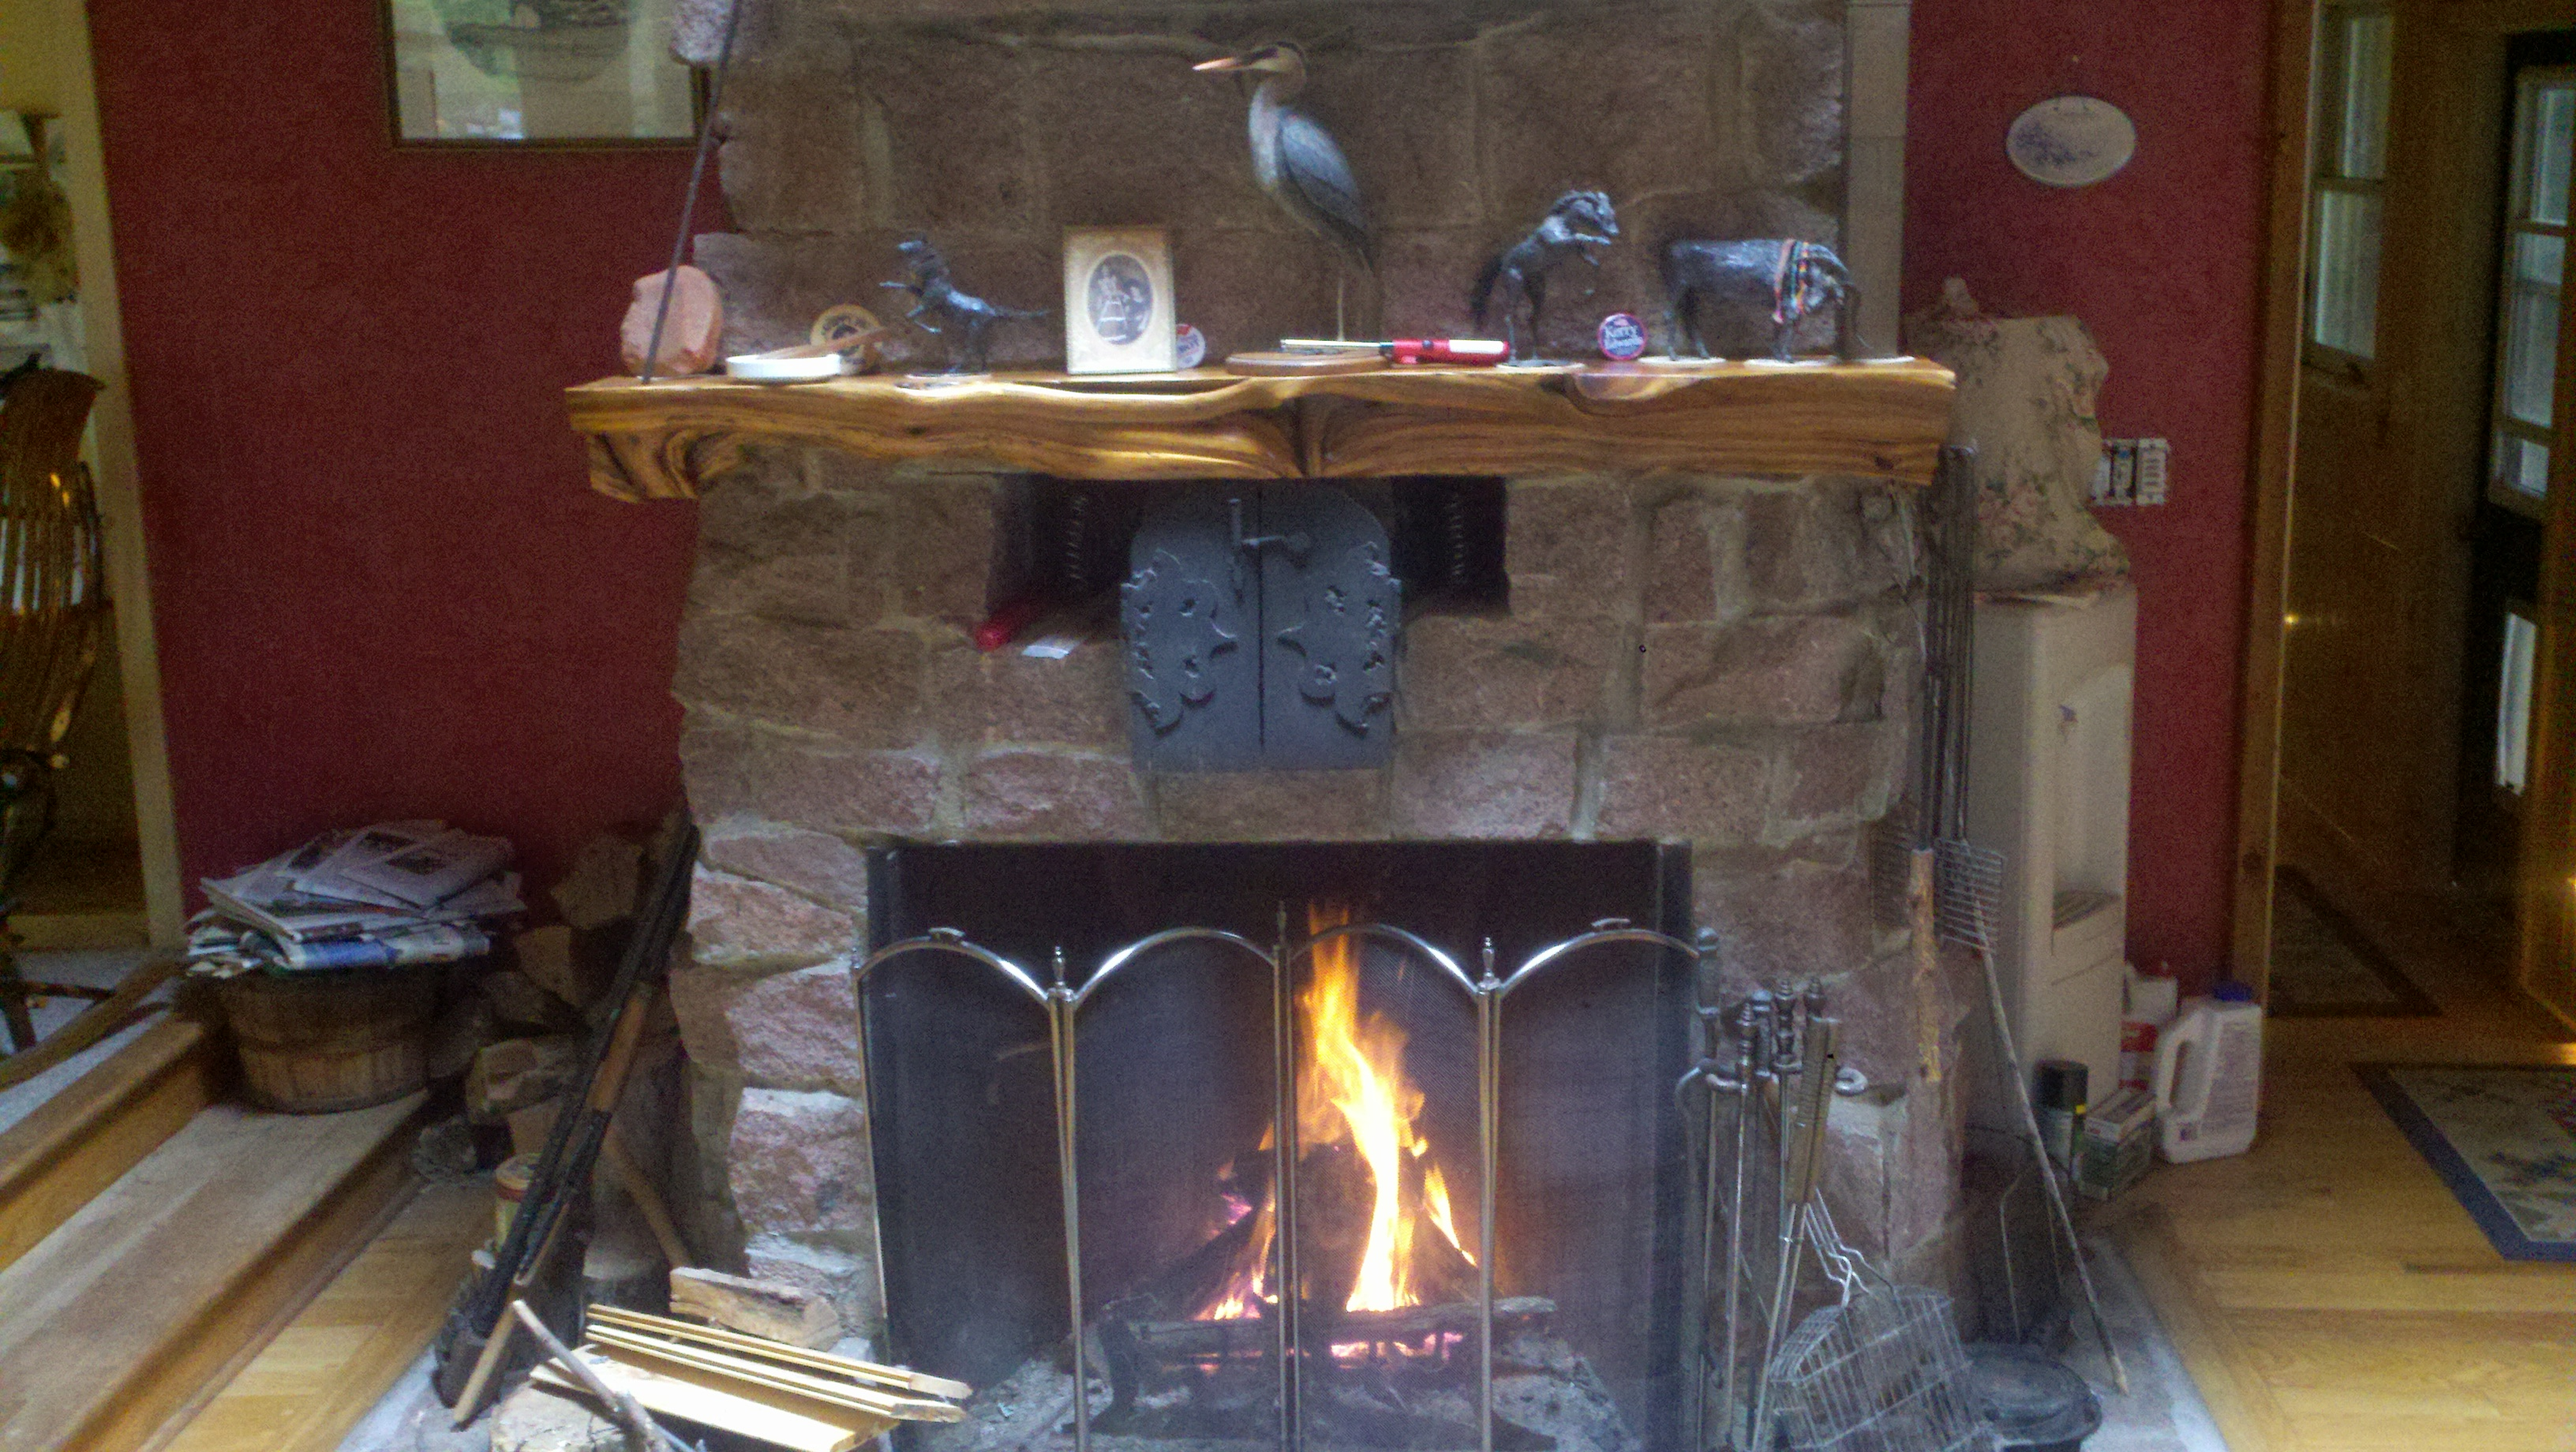 Our fireplace in the Grindstone stonehouse